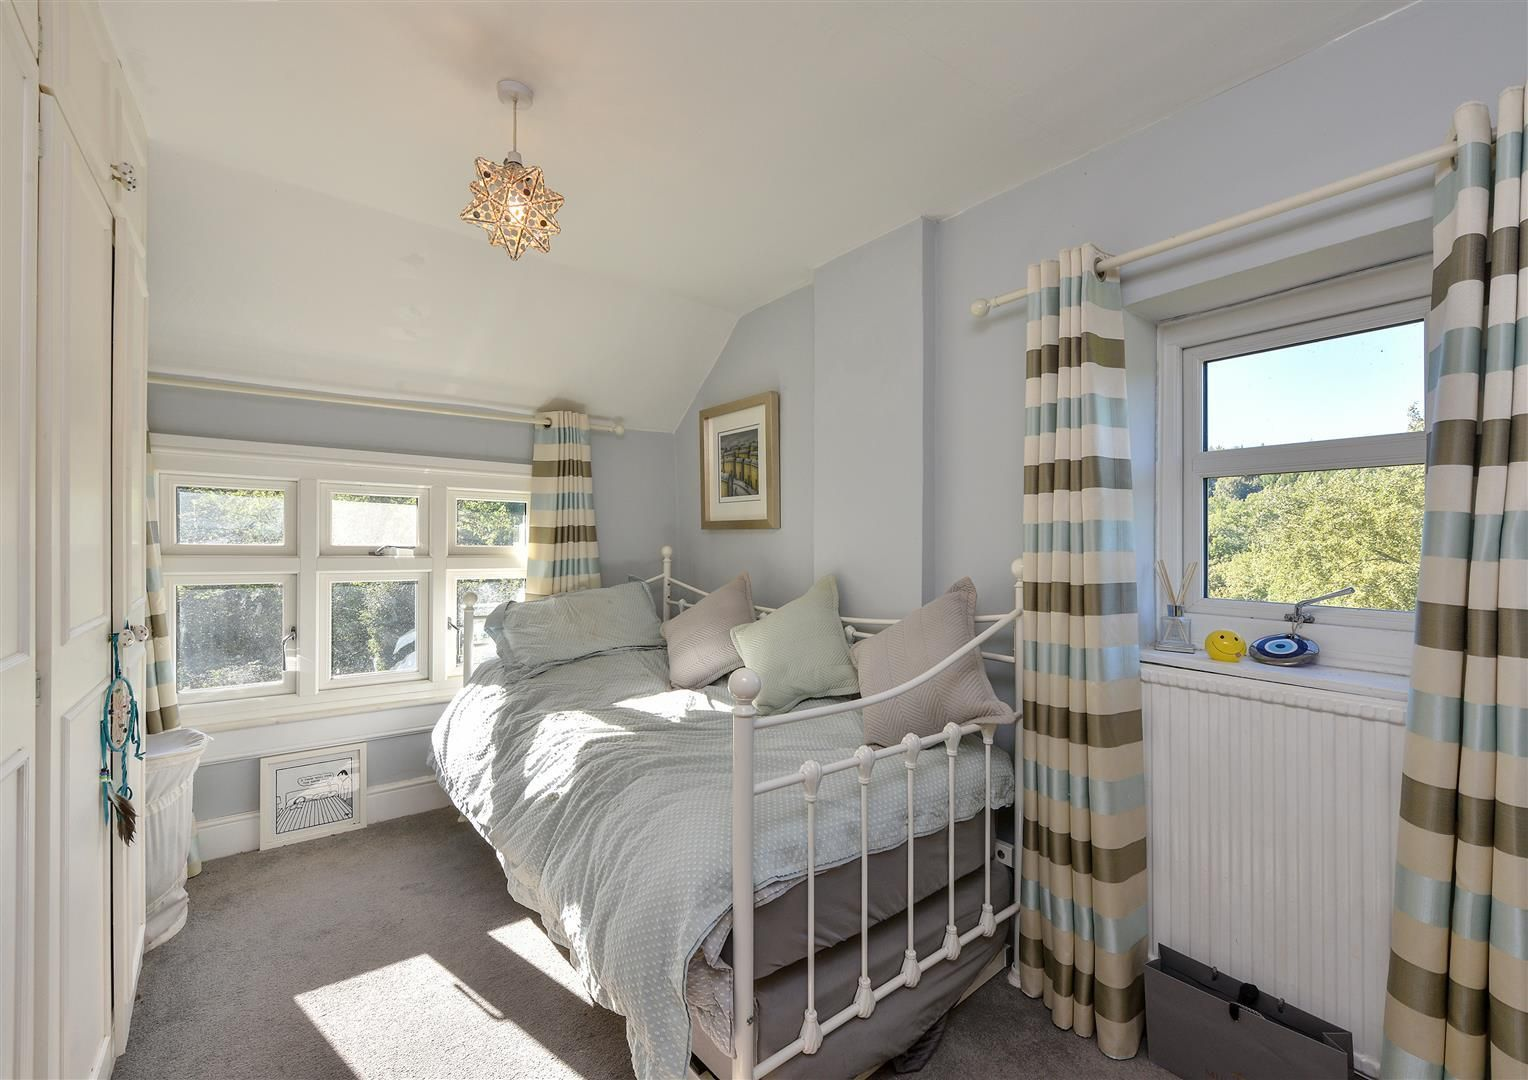 4 bed house for sale in Clent 18